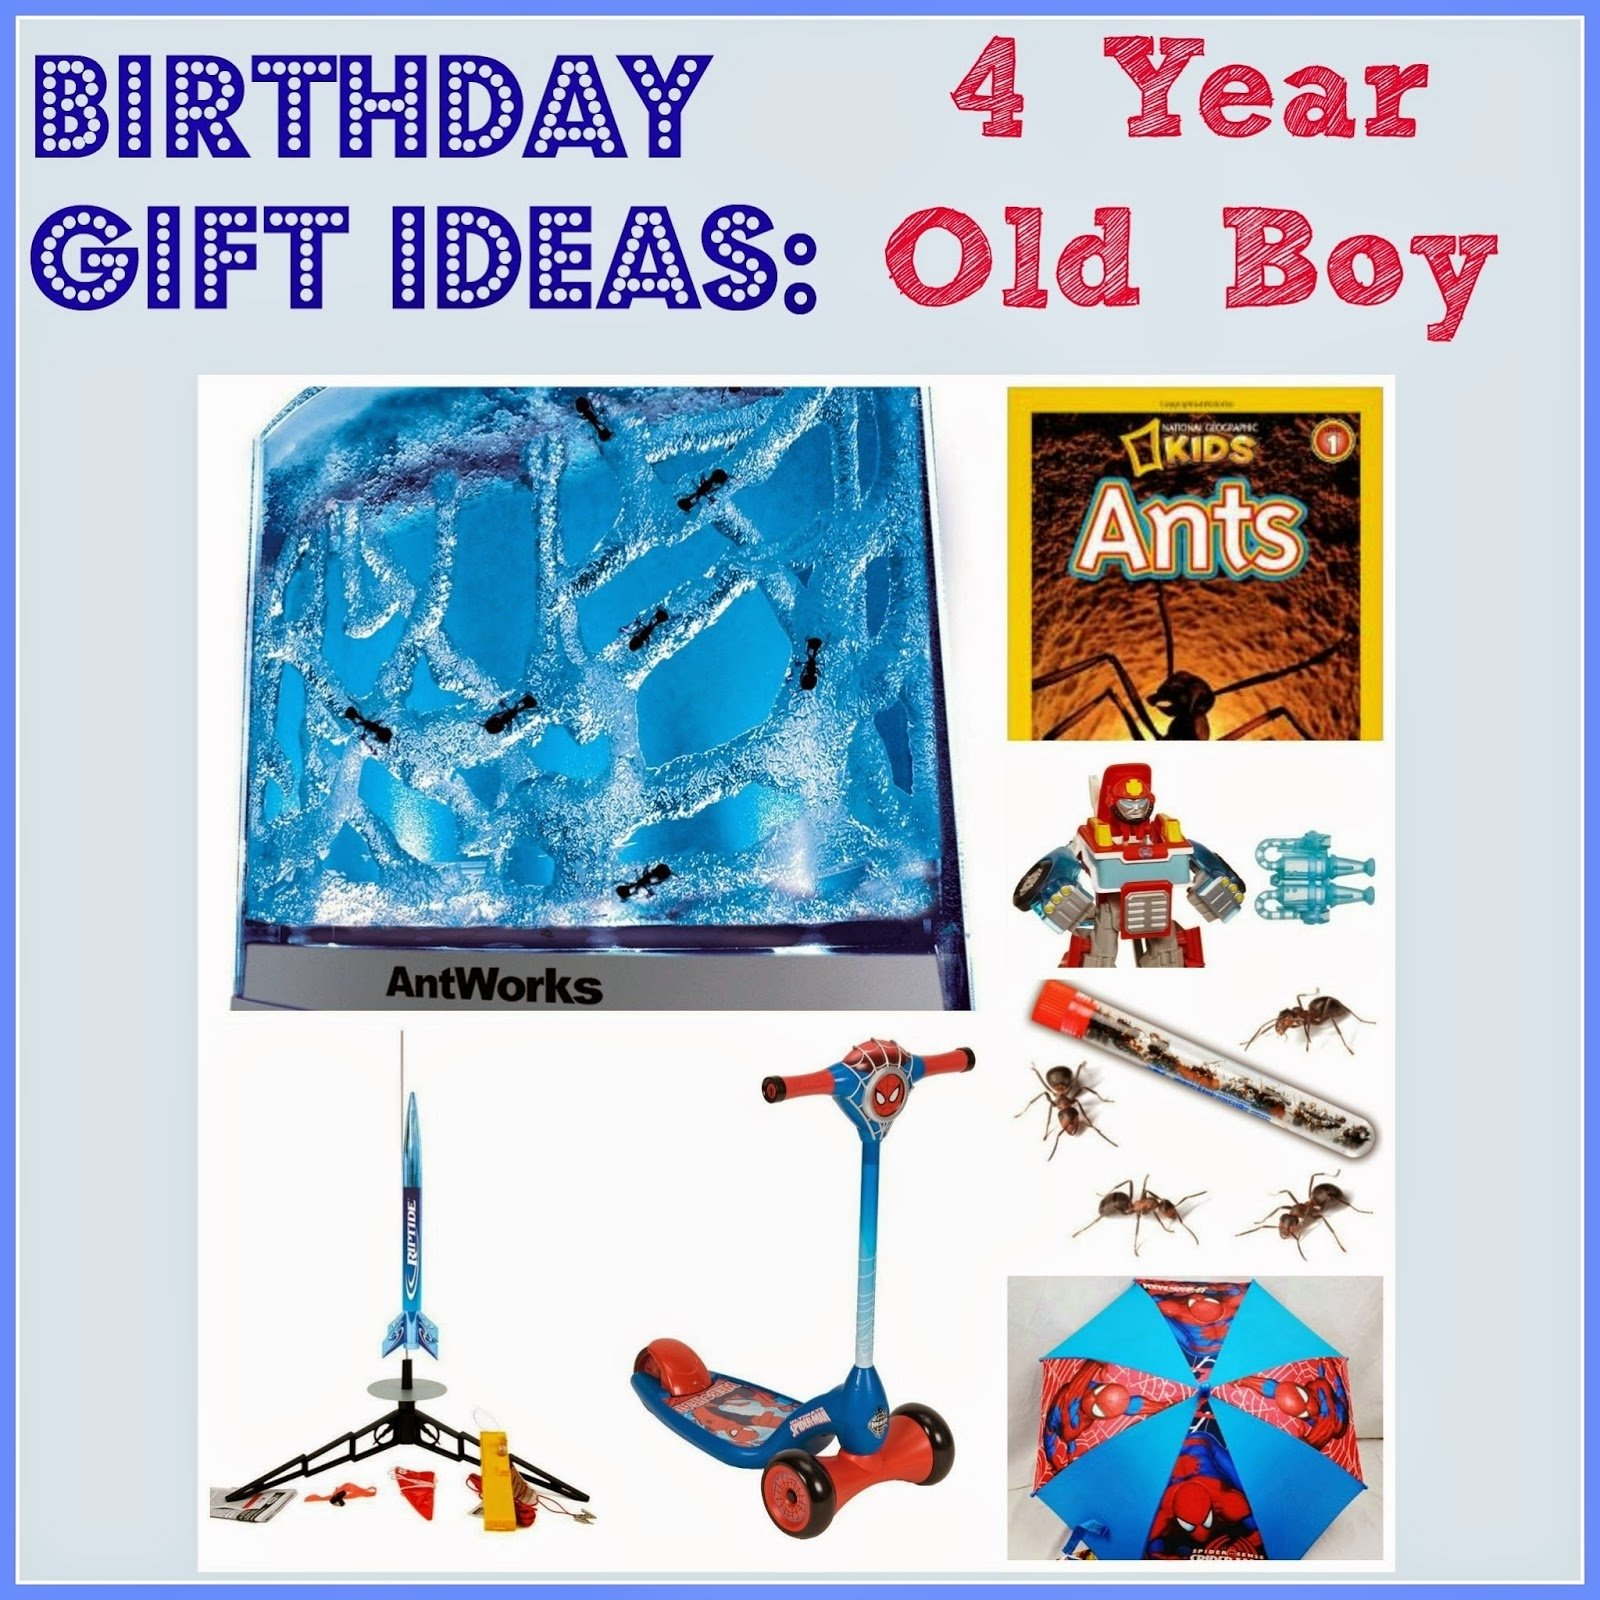 10 Best 5 Year Old Birthday Gift Ideas Boy Home Design